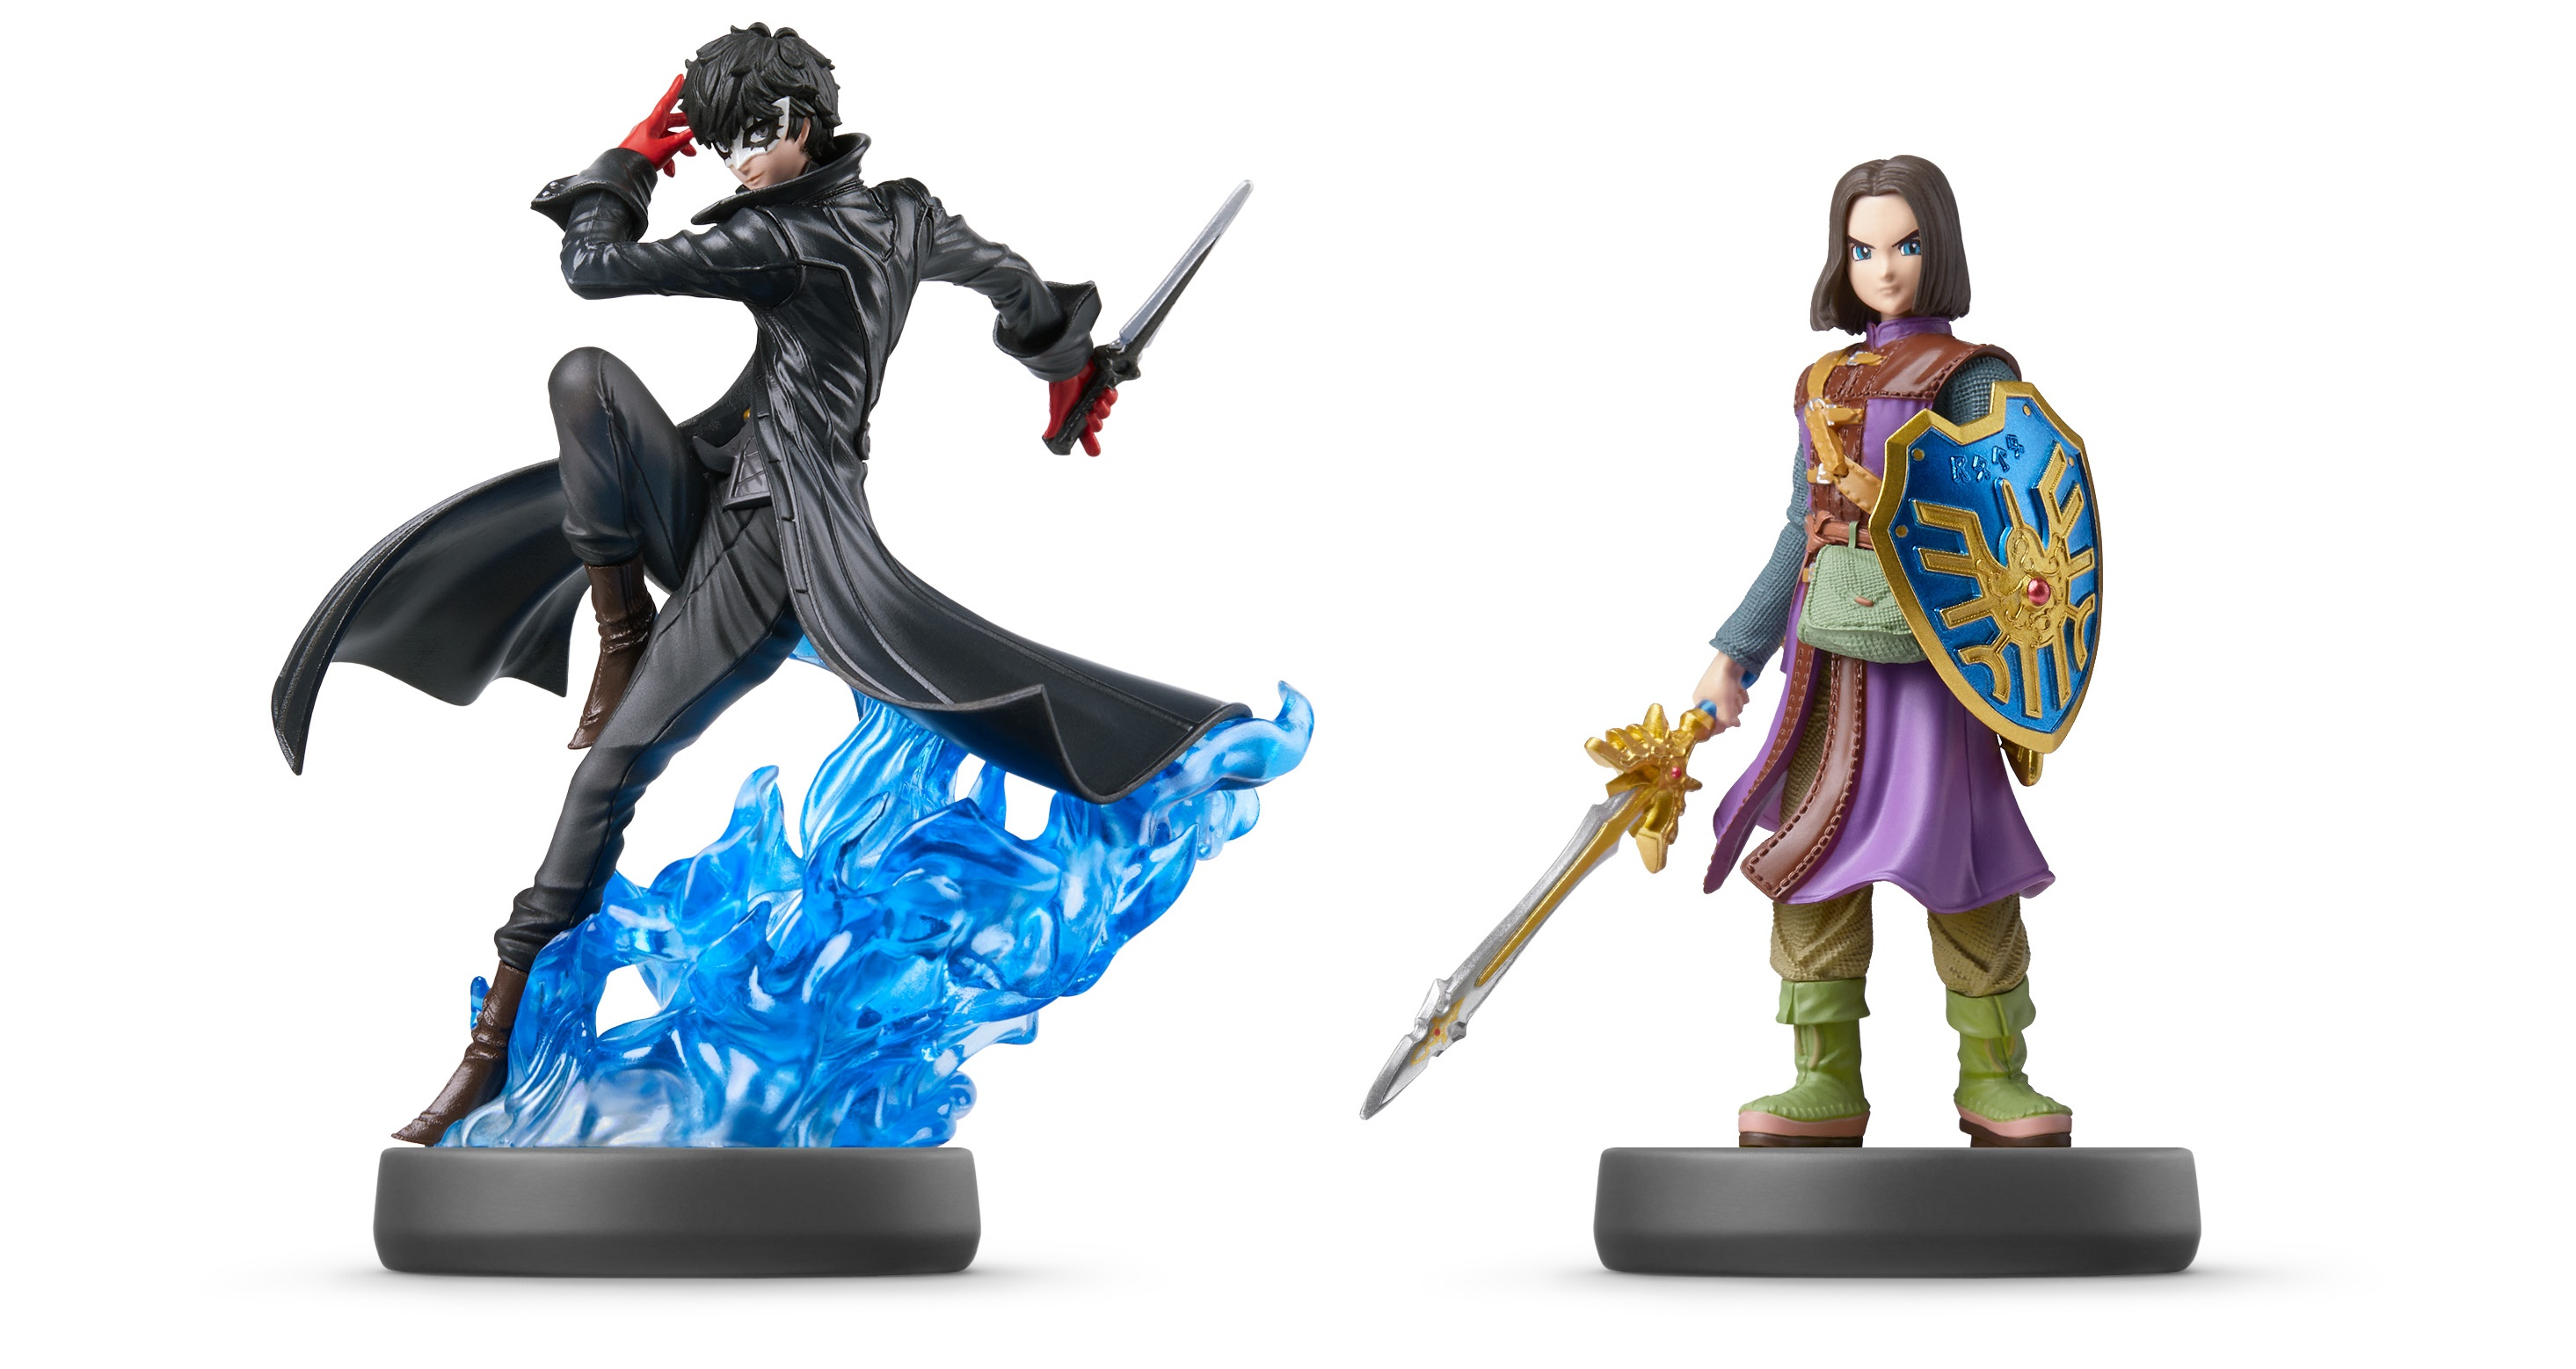 Joker & Hero amiibo